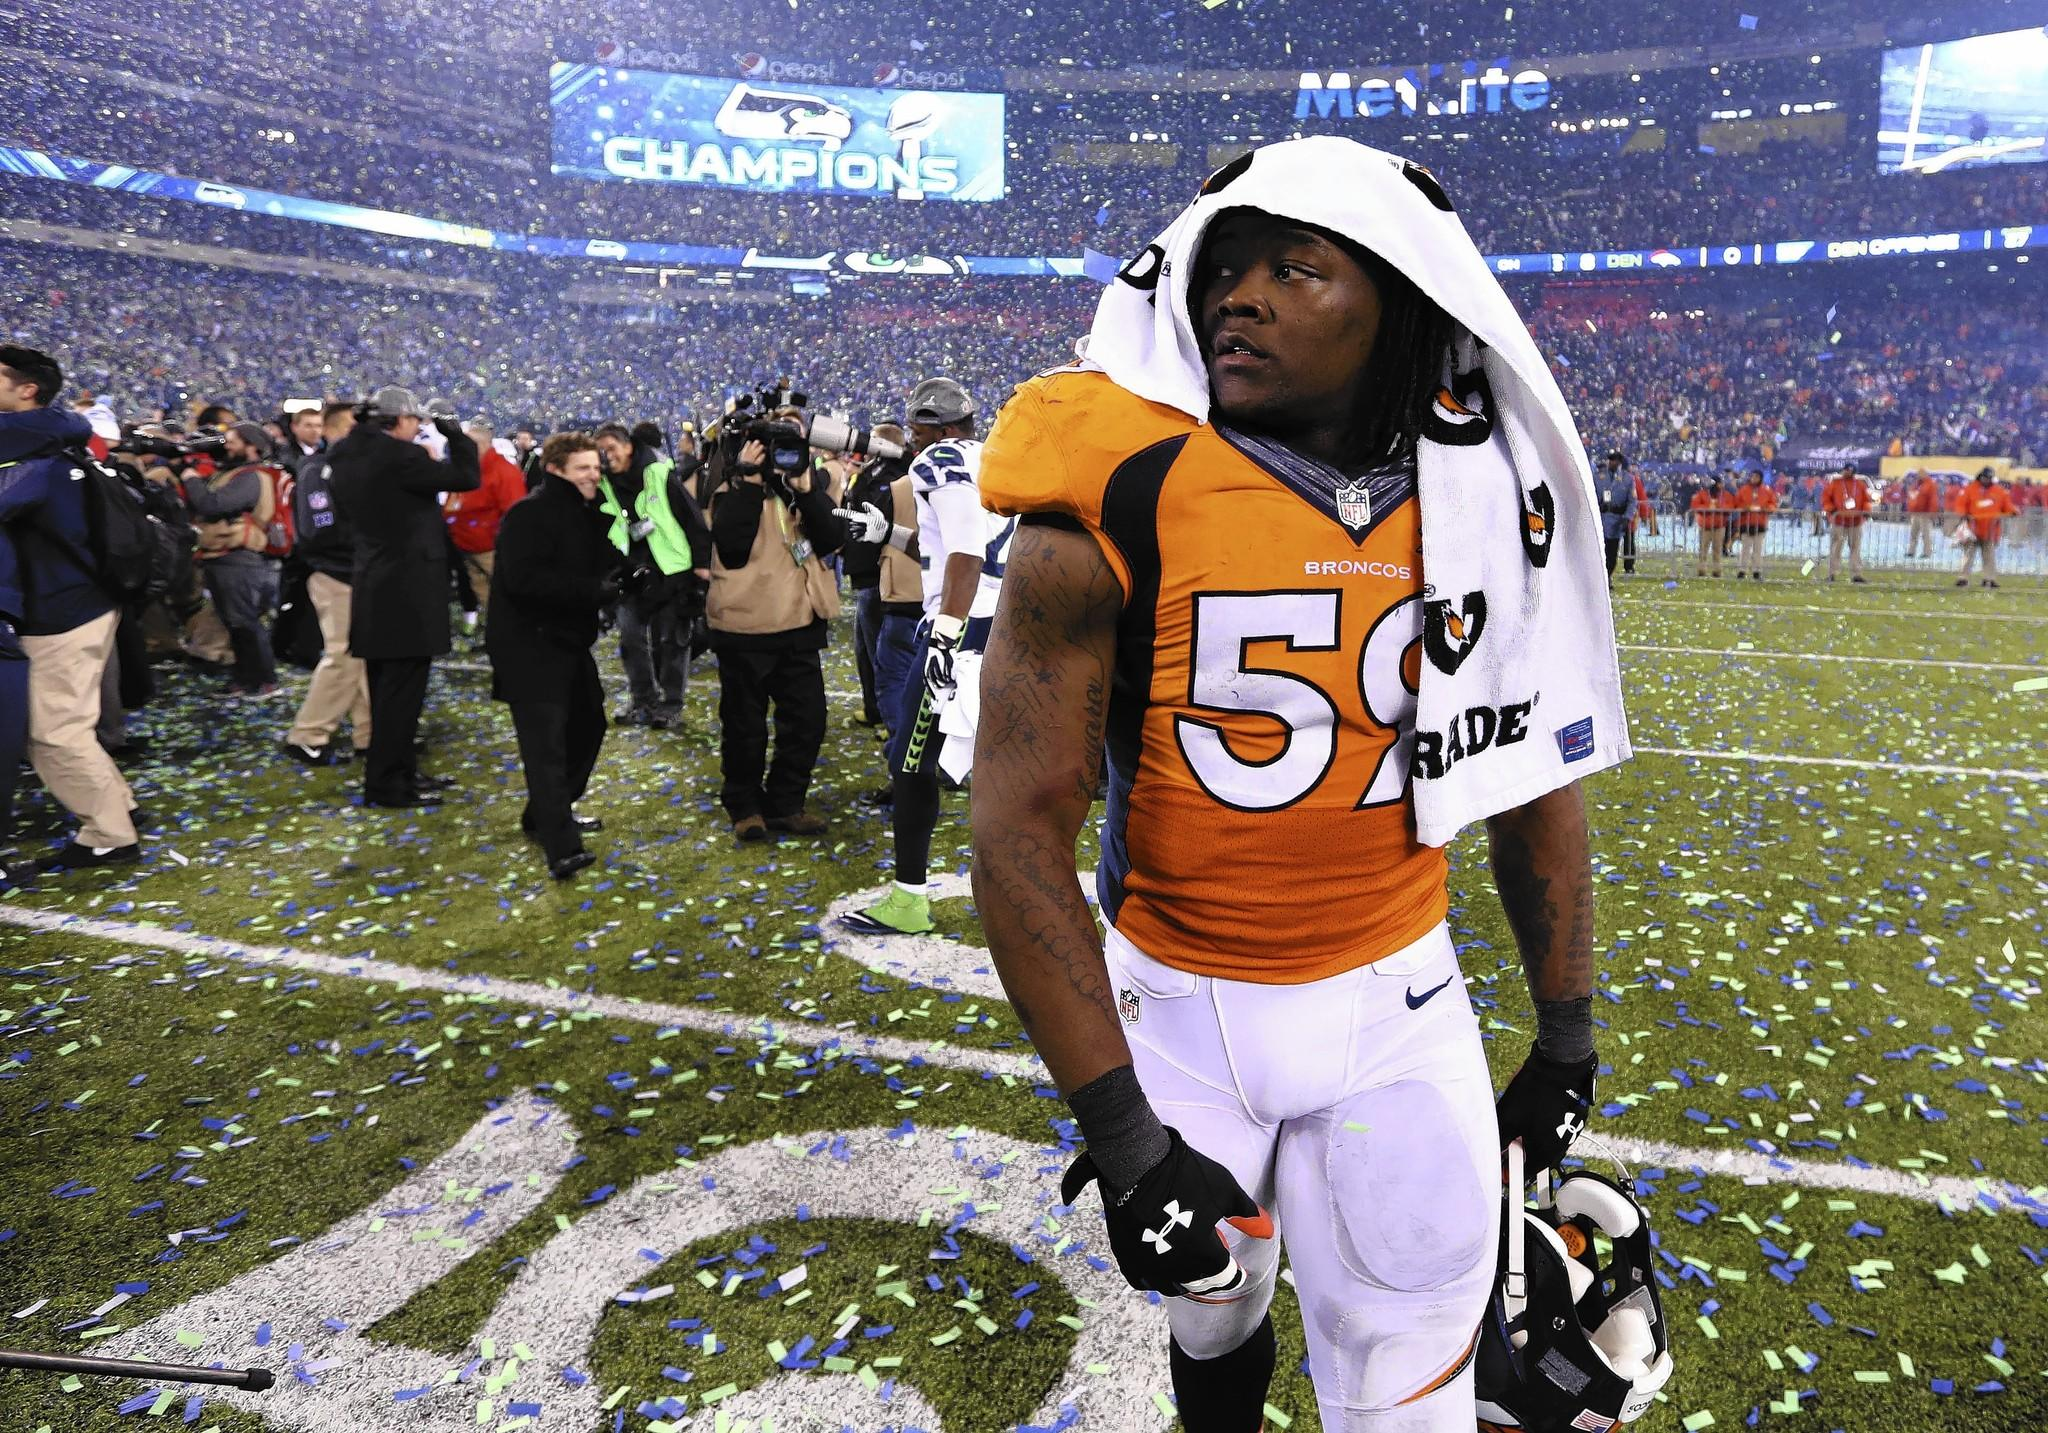 Denver Broncos linebacker Danny Trevathan walks off the field after losing the Super Bowl against the Seattle Seahawks at MetLife Stadium. Seattle Seahawks won 43-8.